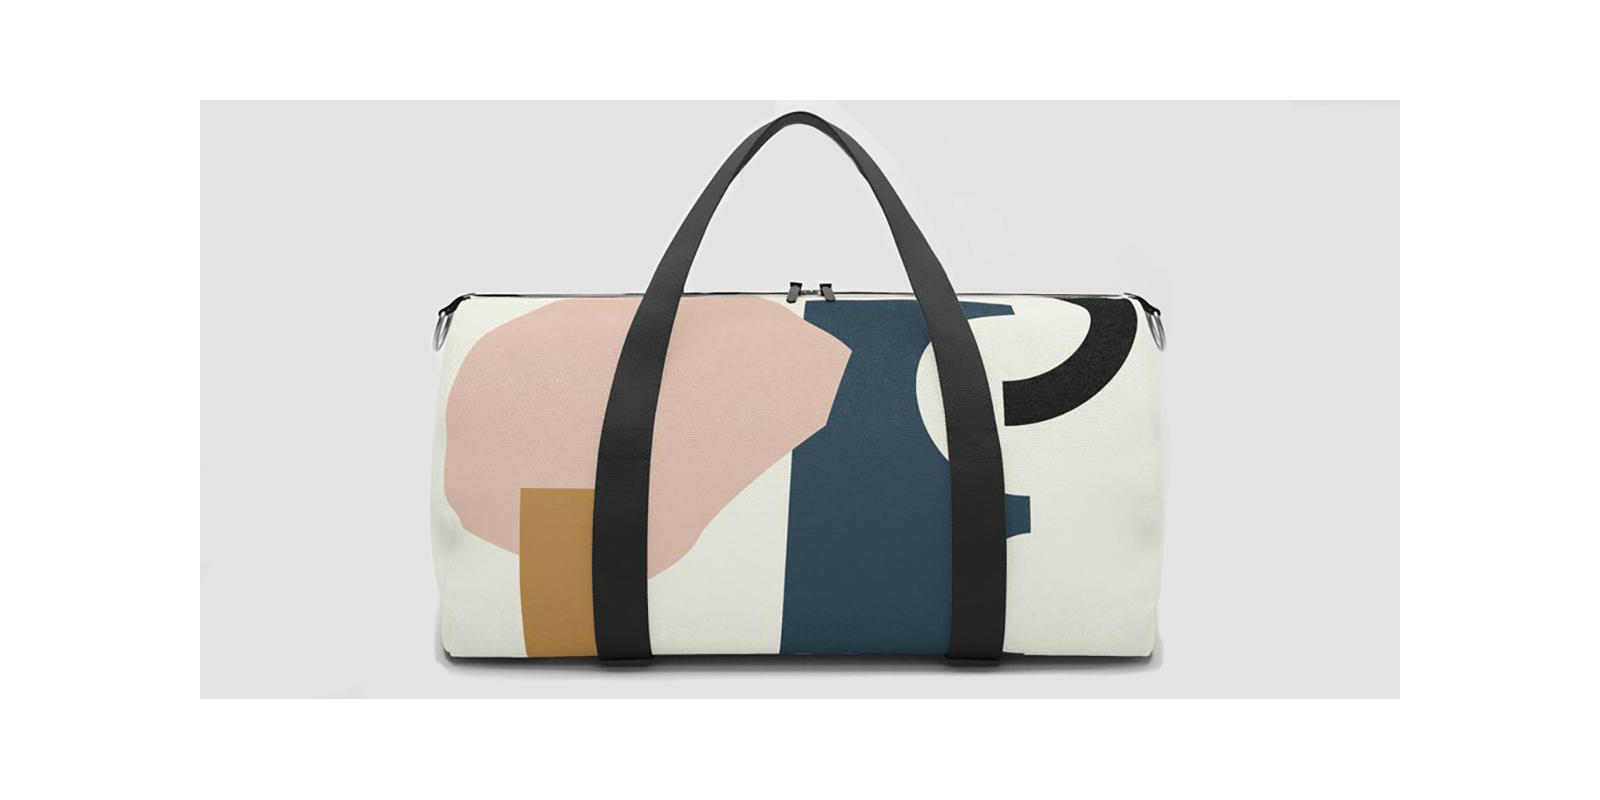 Get this perfect weekend bag at 35% off